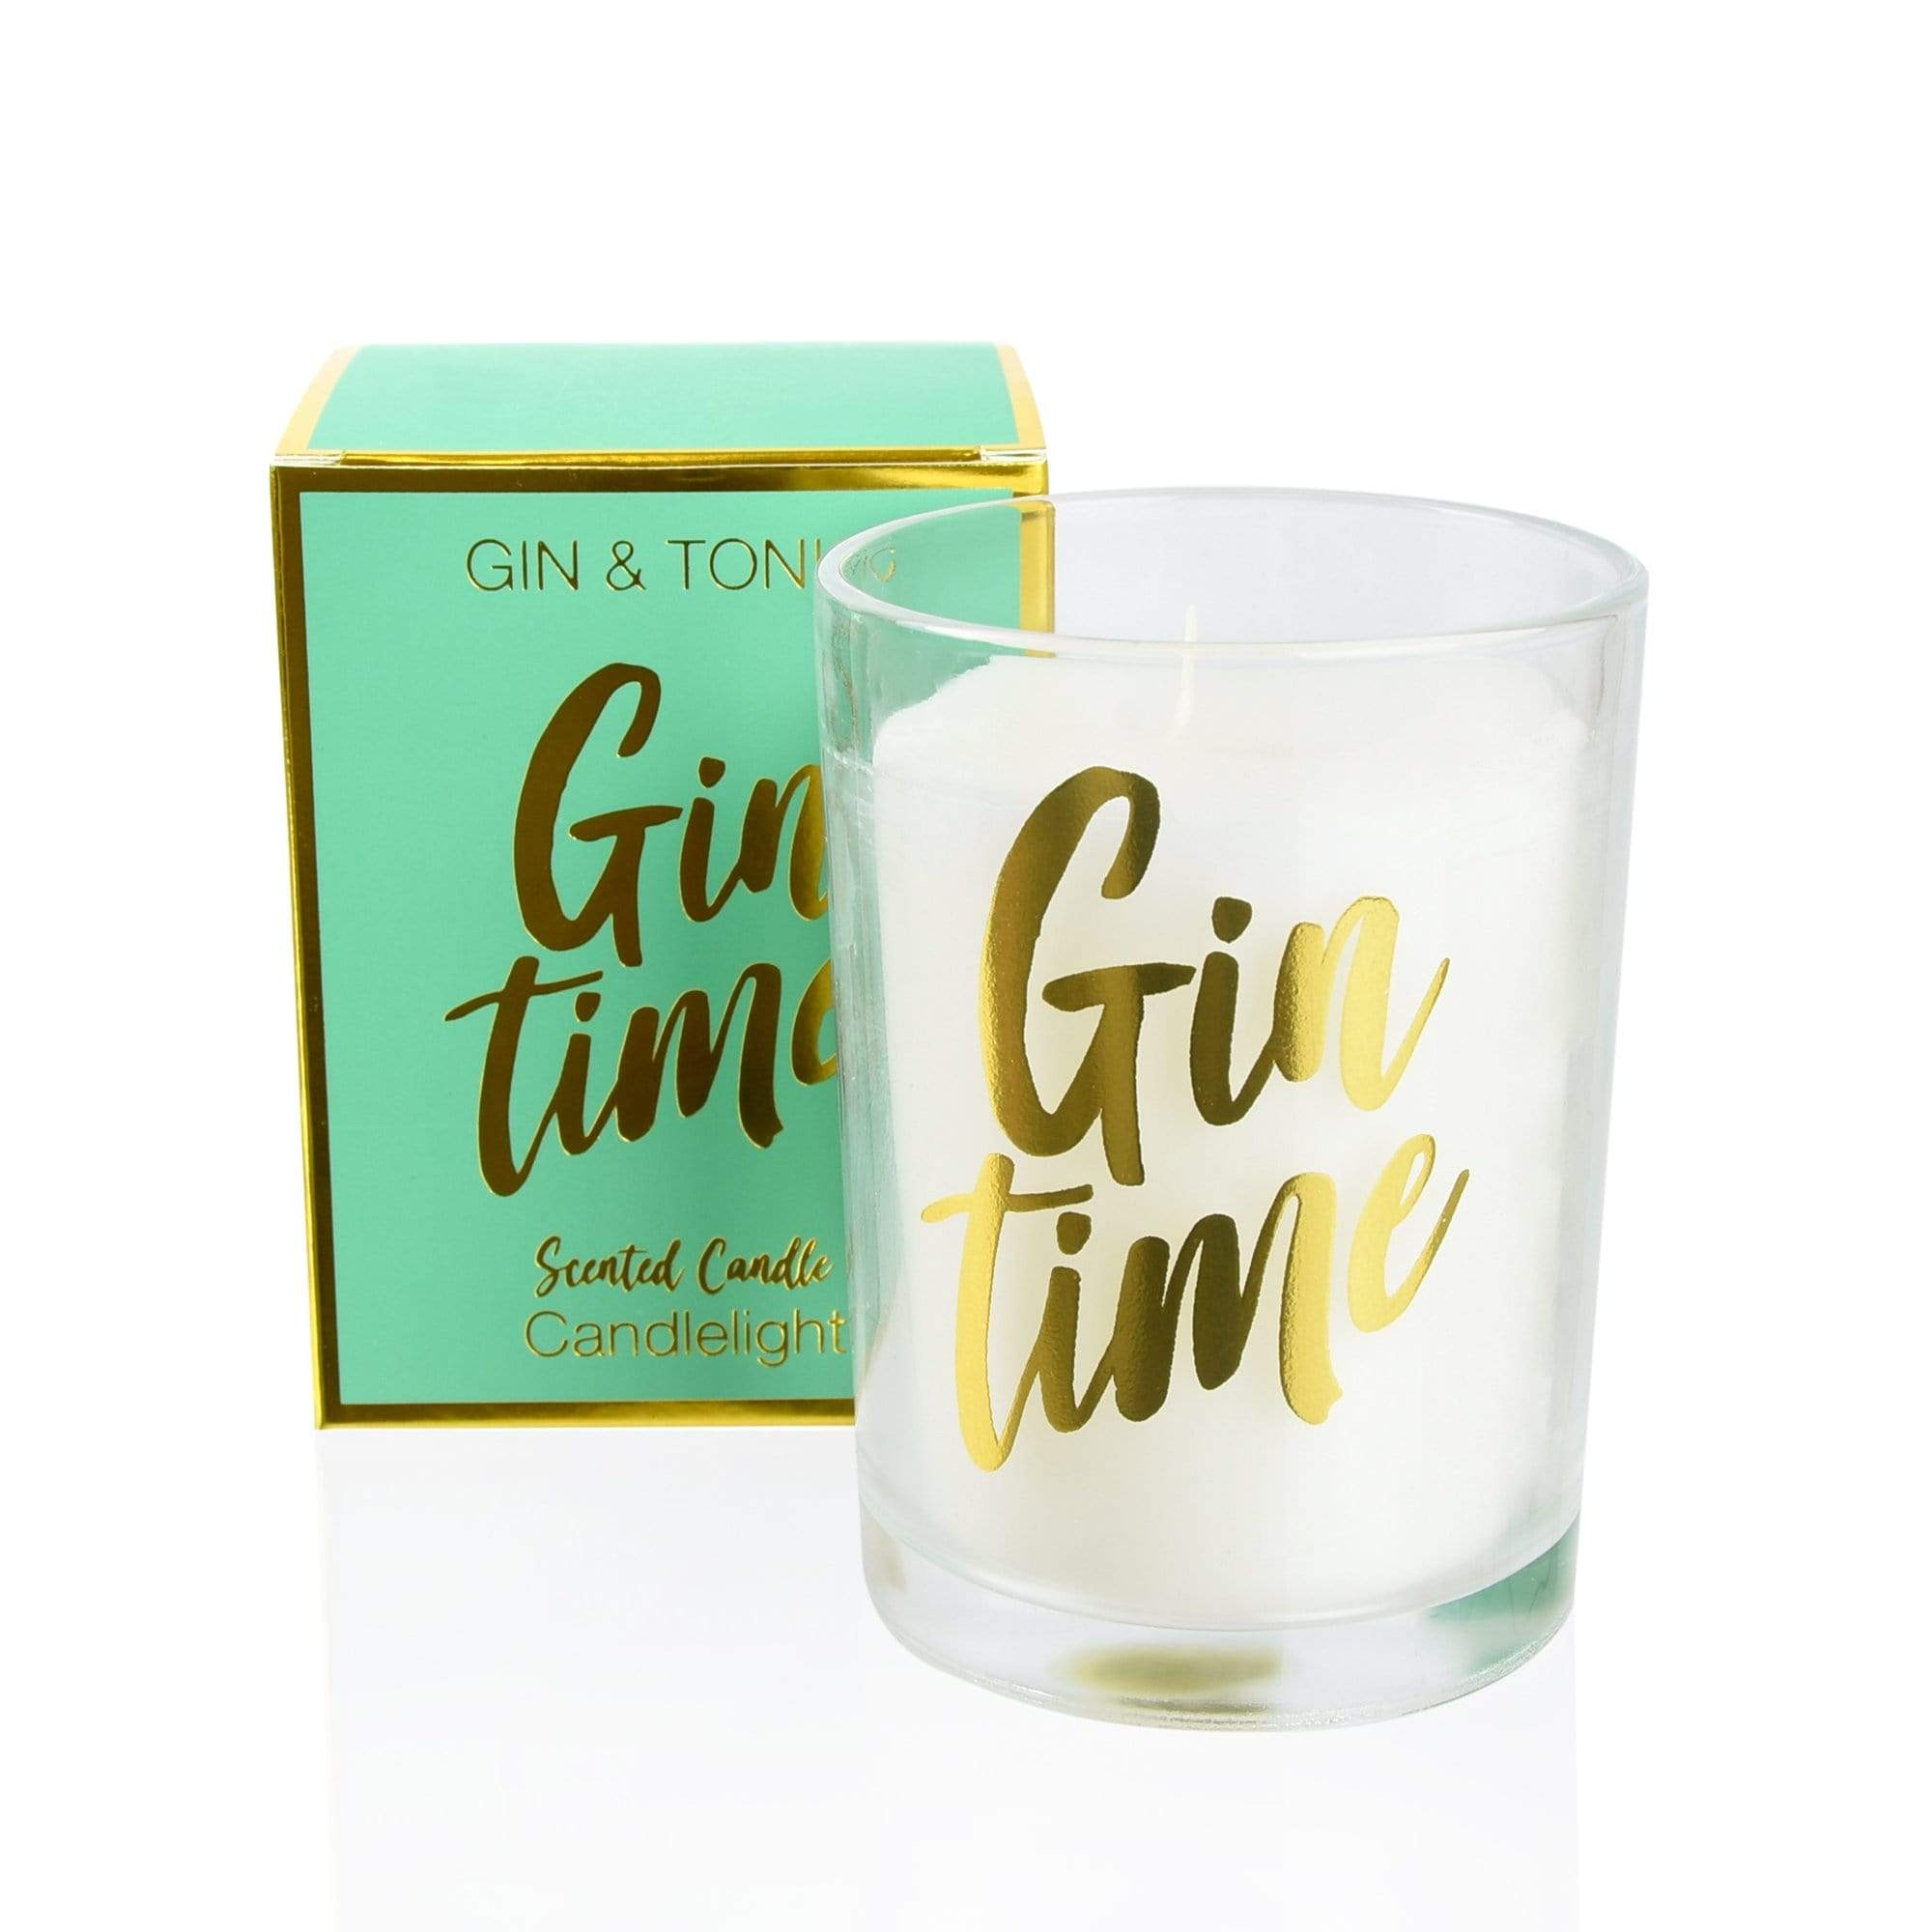 Candlelight Gin and Tonic Scented Candle in Gift Box Gin and Tonic Scent 220g 4PK